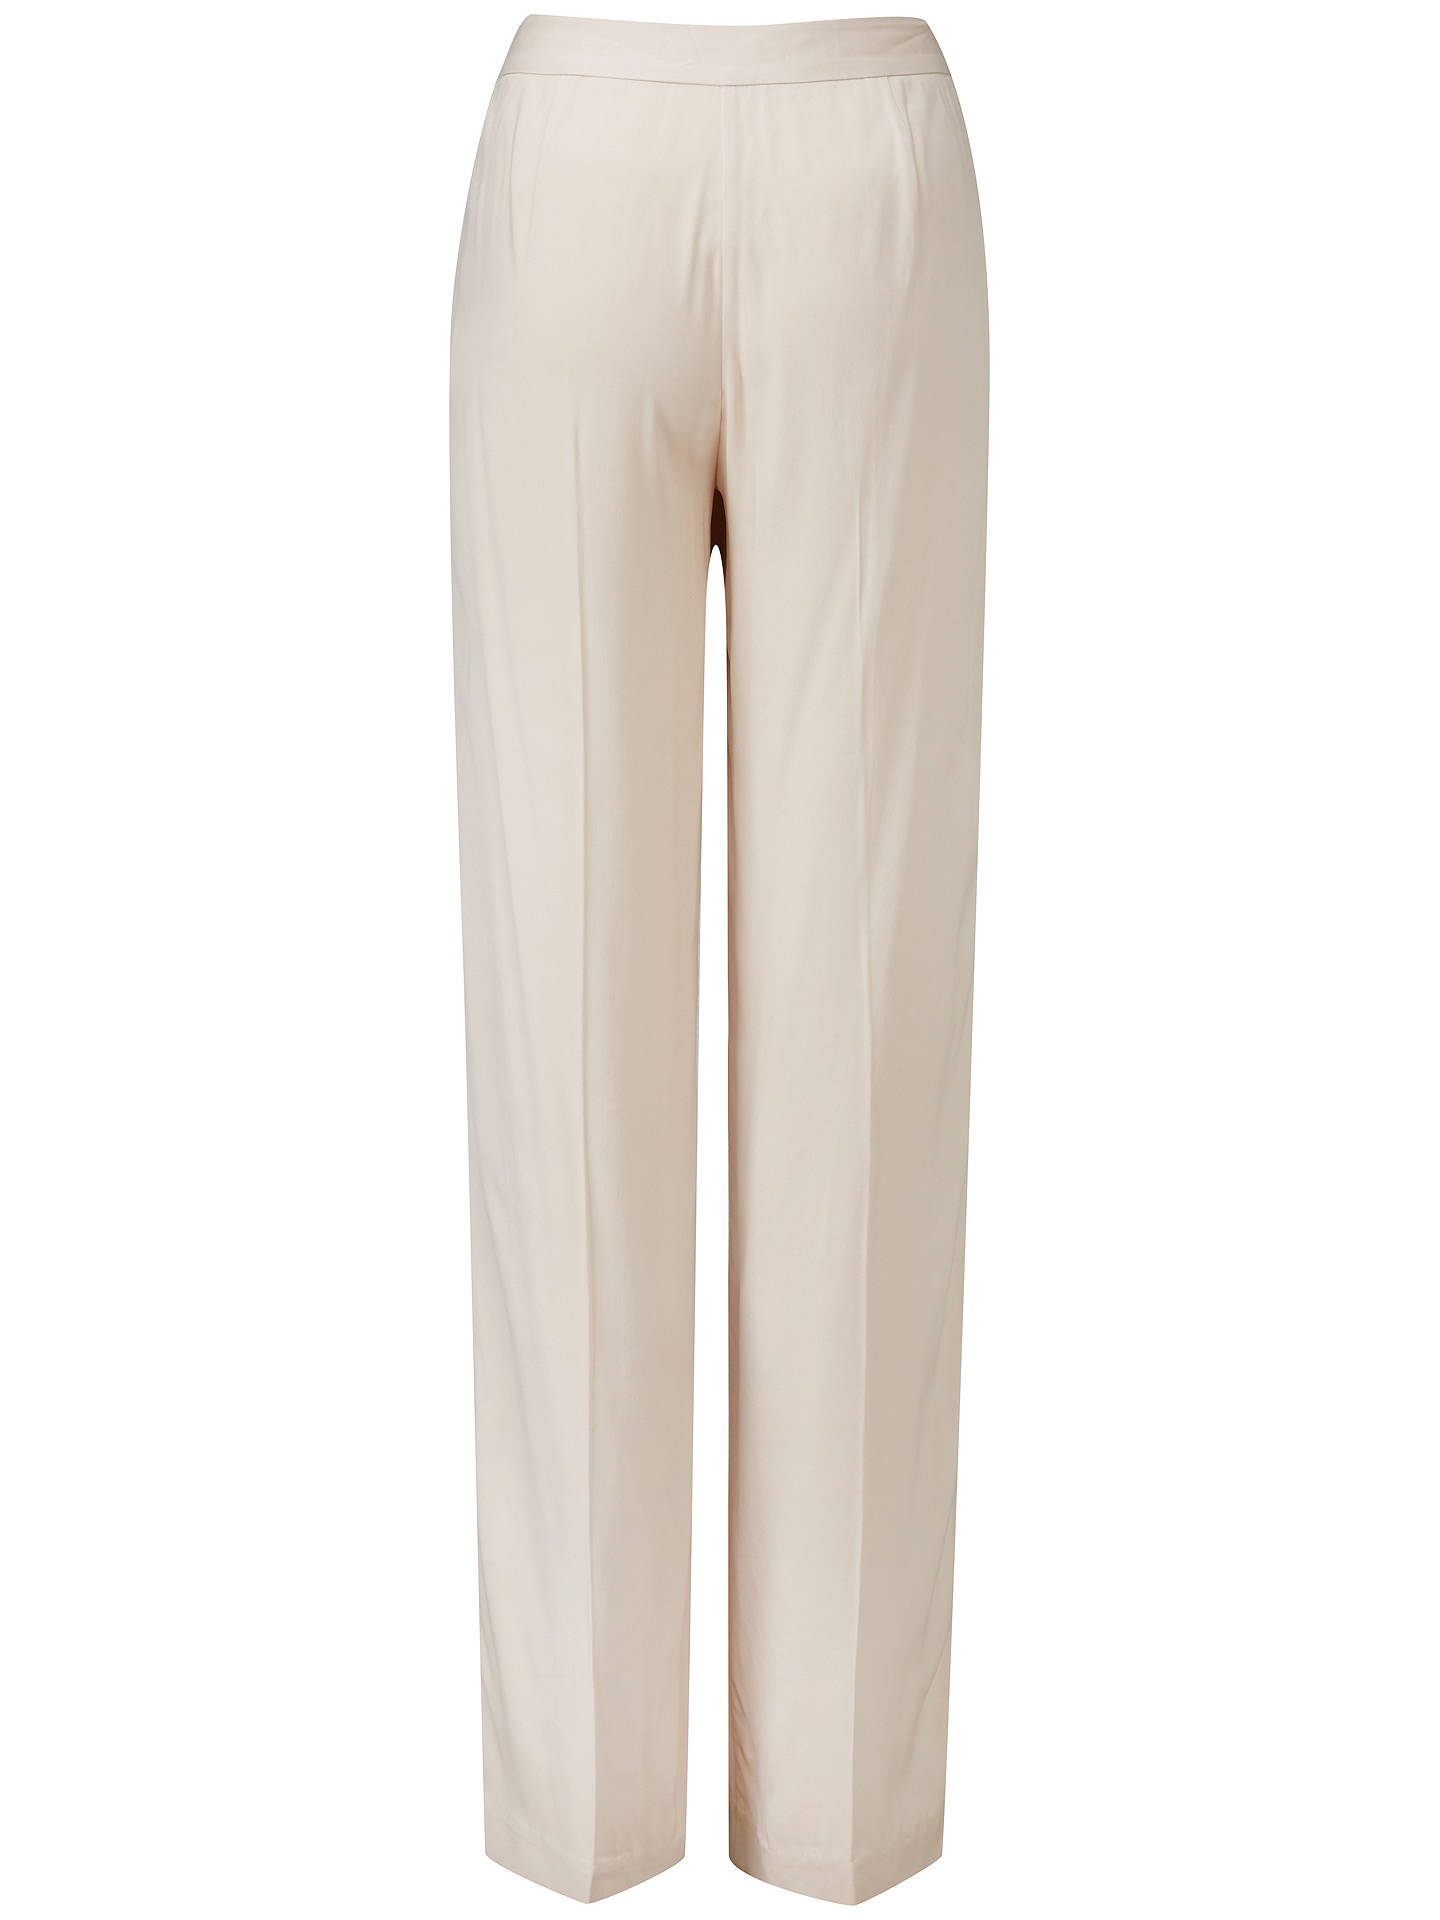 BuyPure Collection Fluid Wide Leg Trousers, Neutral, 8 Online at johnlewis.com